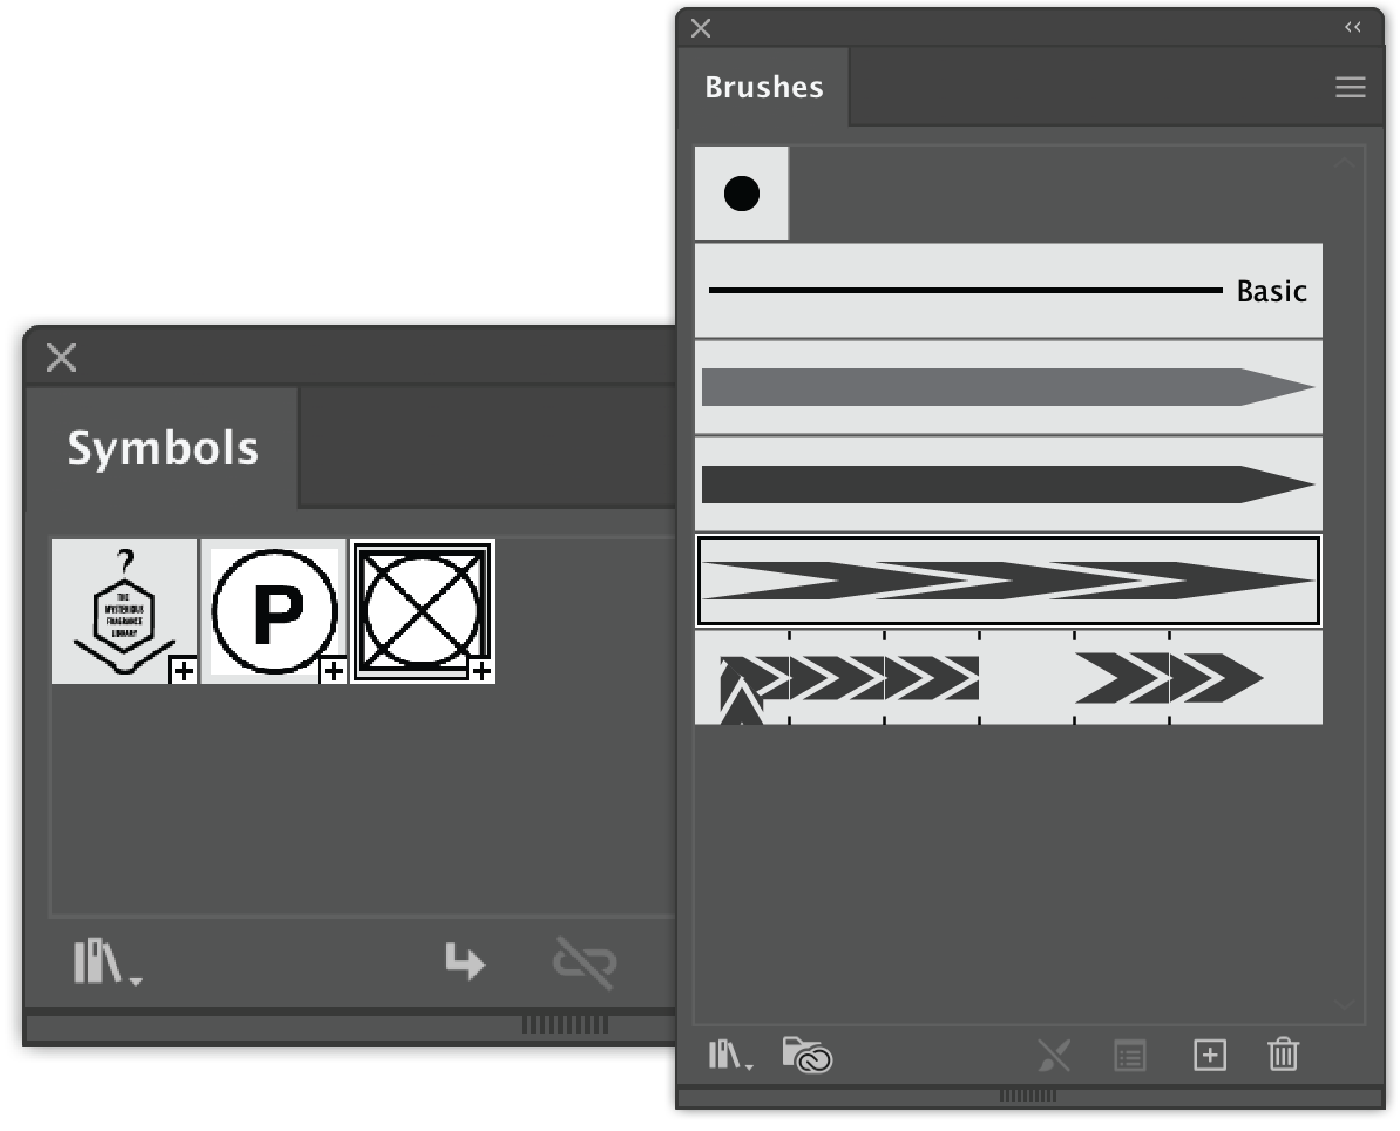 Brushes and Symbols saved as template